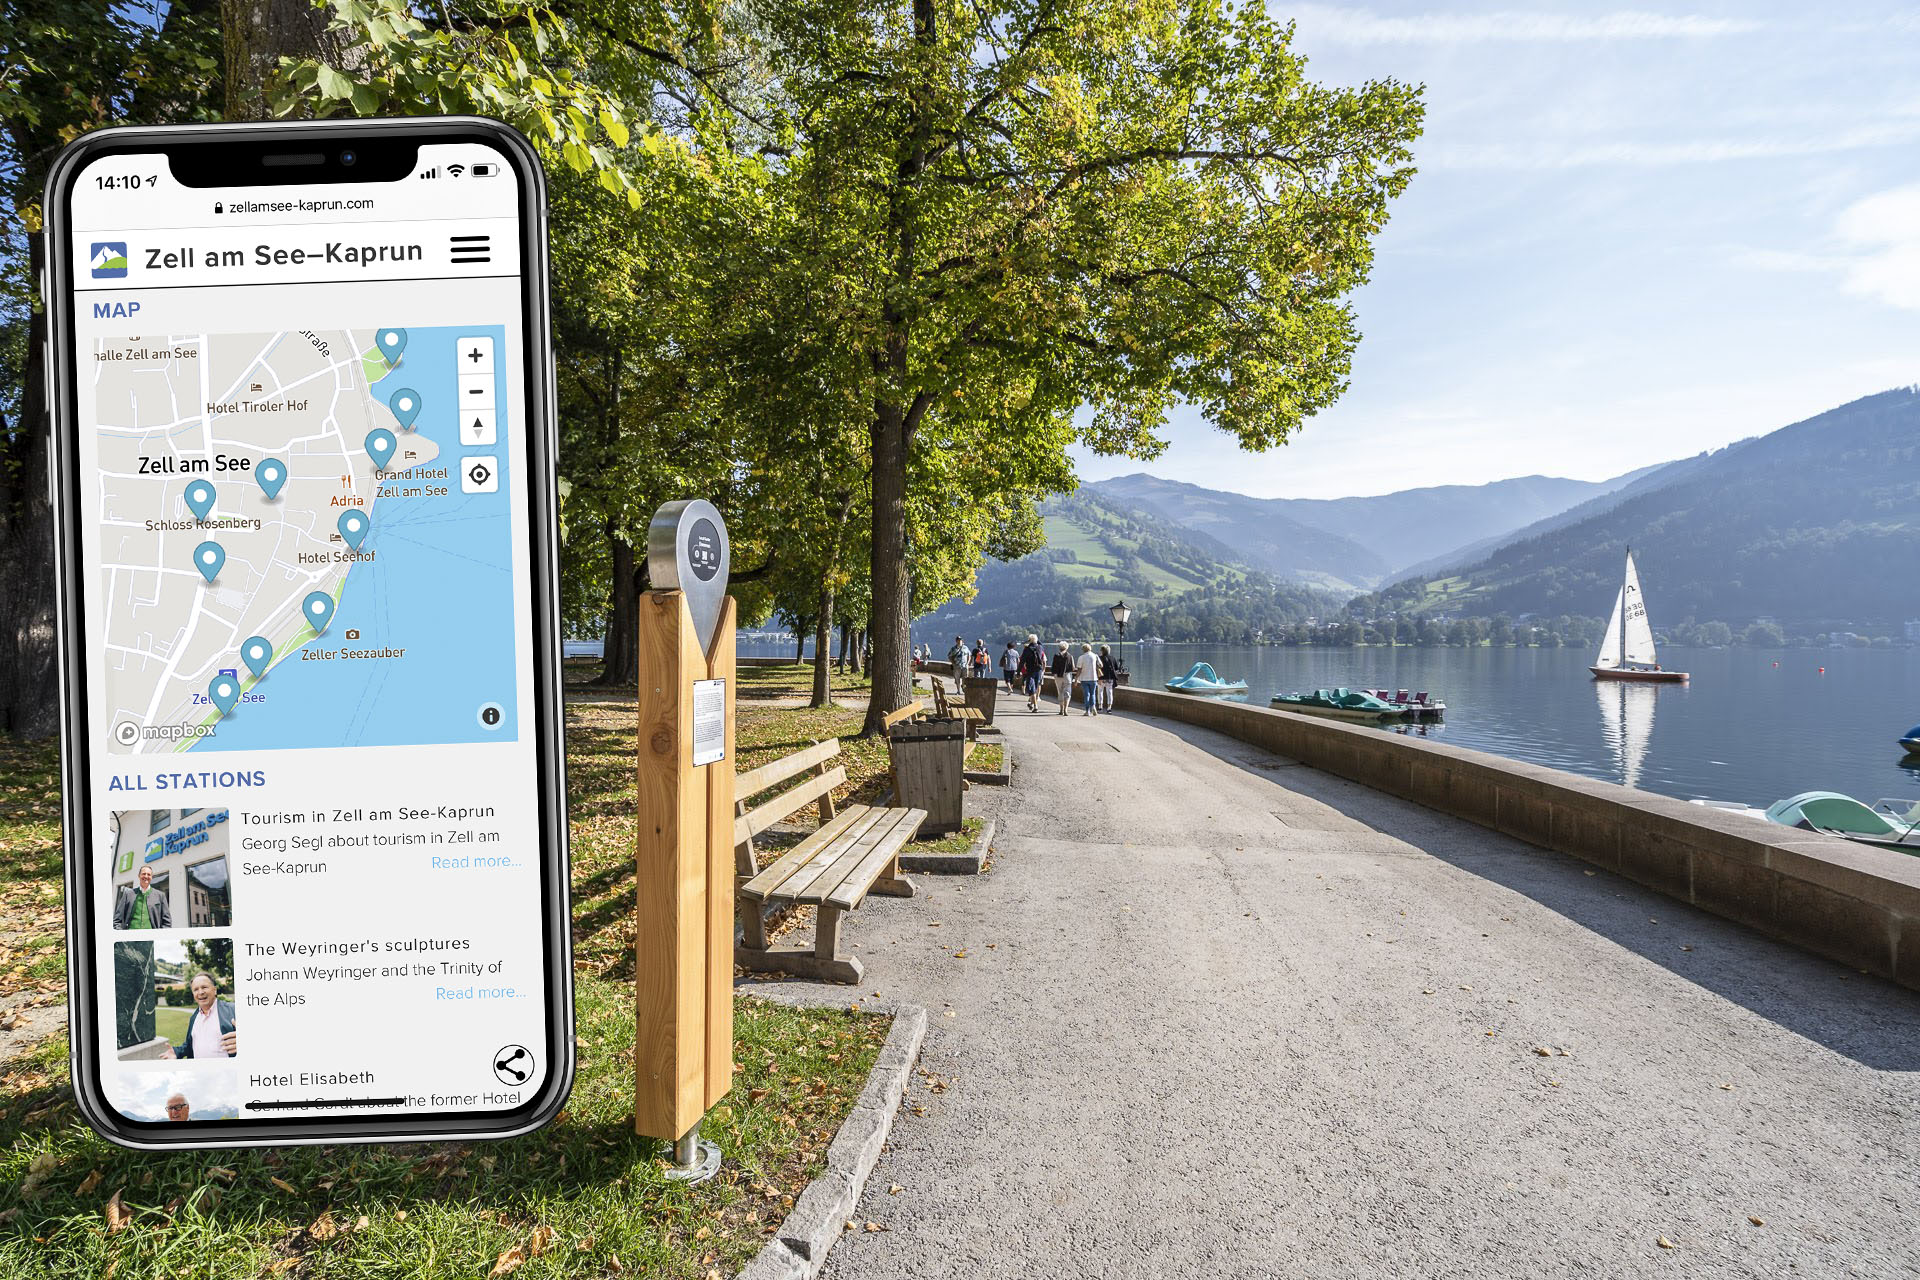 Mobile information system in Zell am See-Kaprun